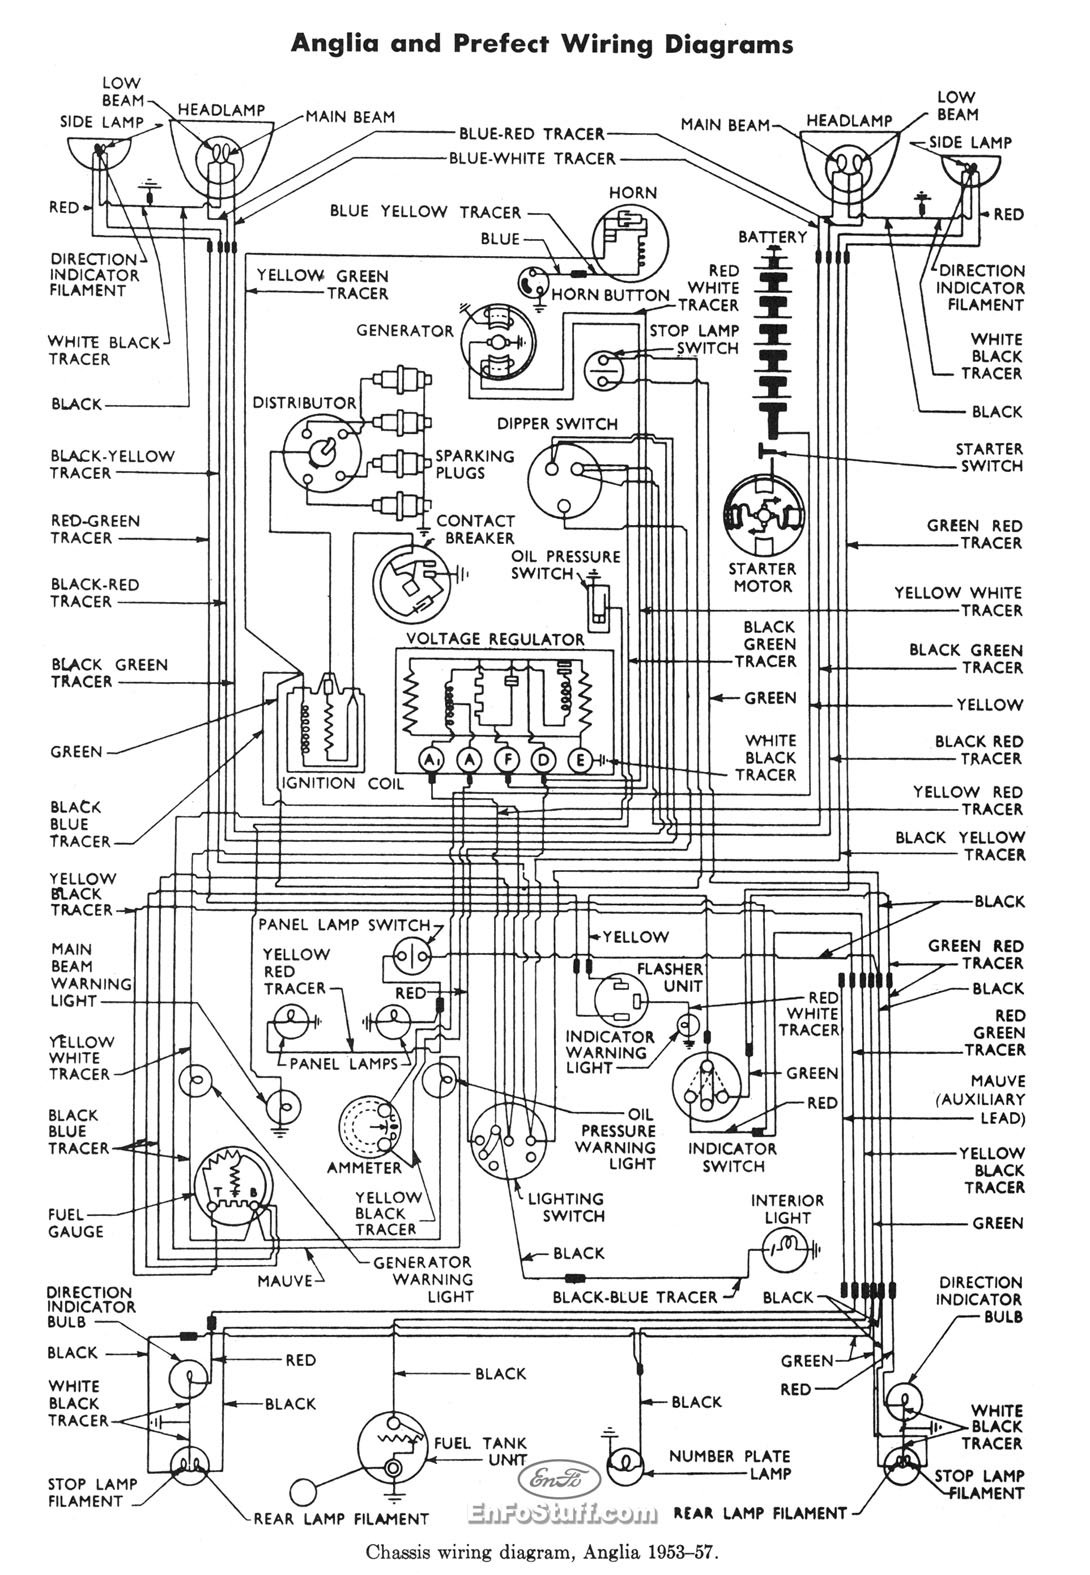 Ford 9n Tractor Wiring Schematic Great Installation Of 1940 4600 Simple Diagram Rh 80 Mara Cujas De 12 Volt